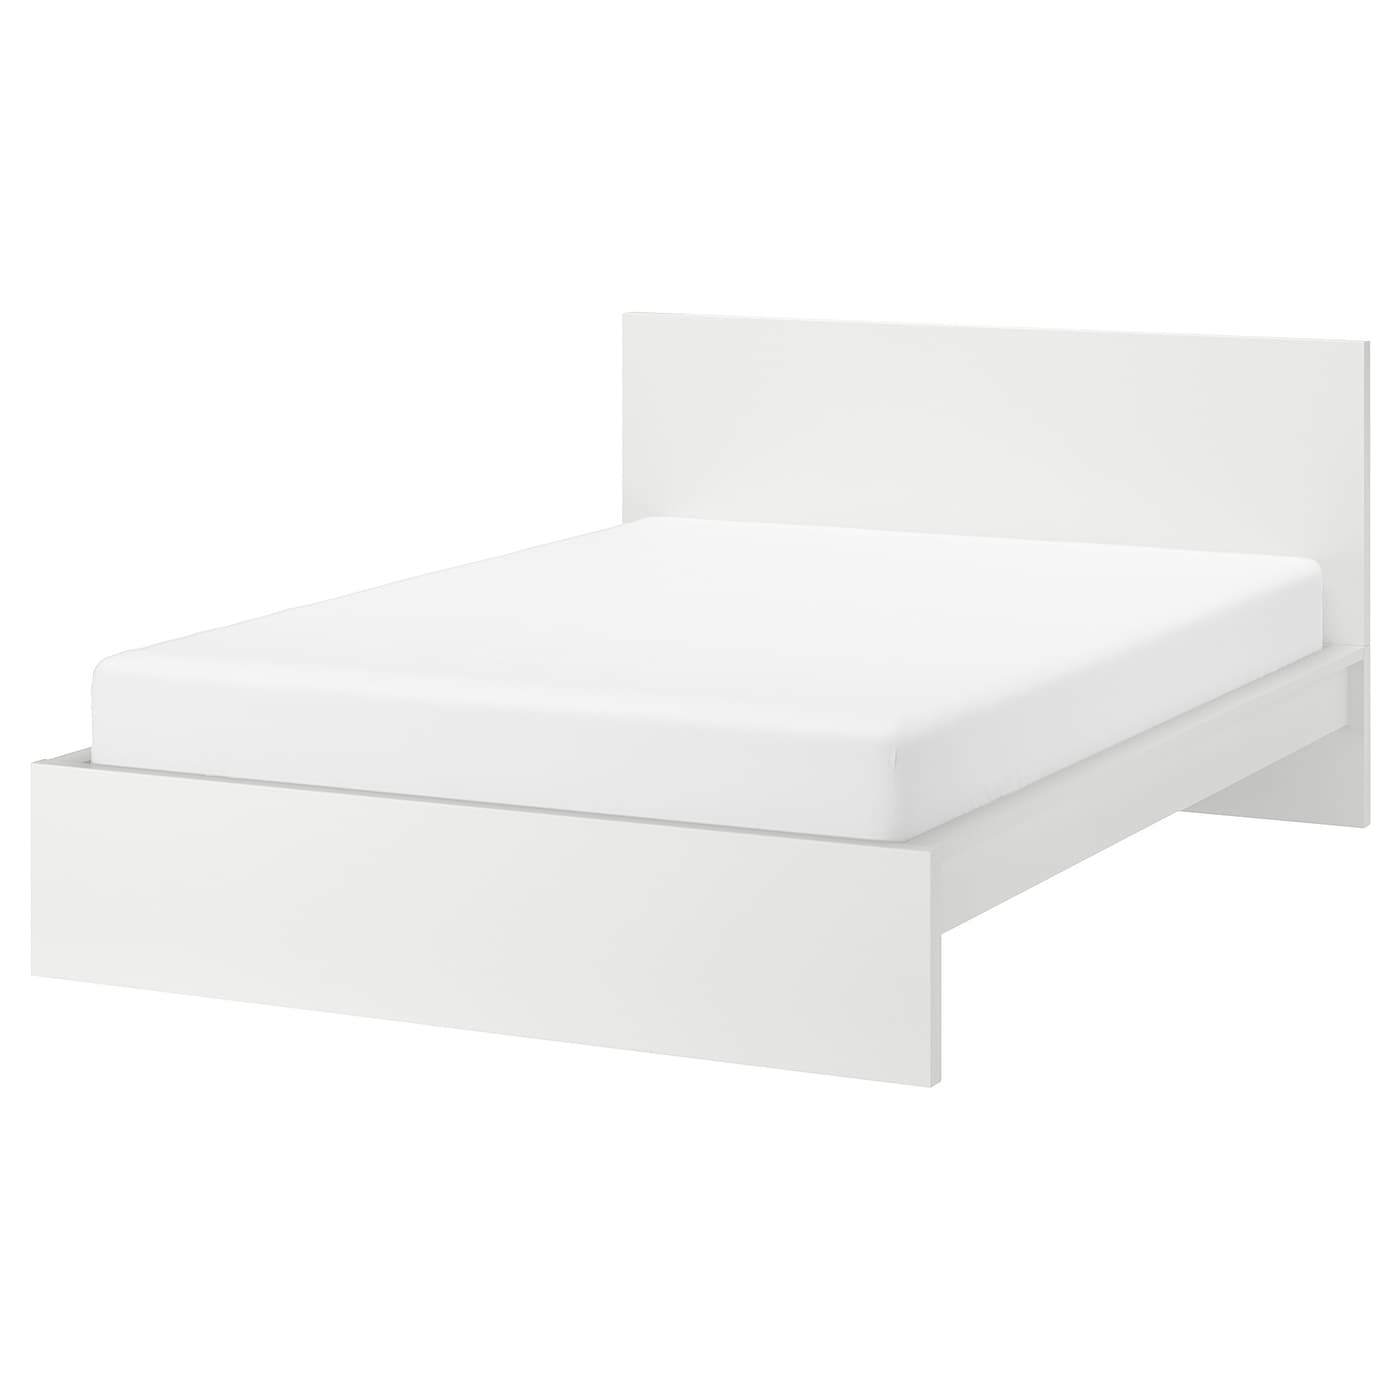 Bedombouw 180x220 Ikea.Malm Bed Frame High White